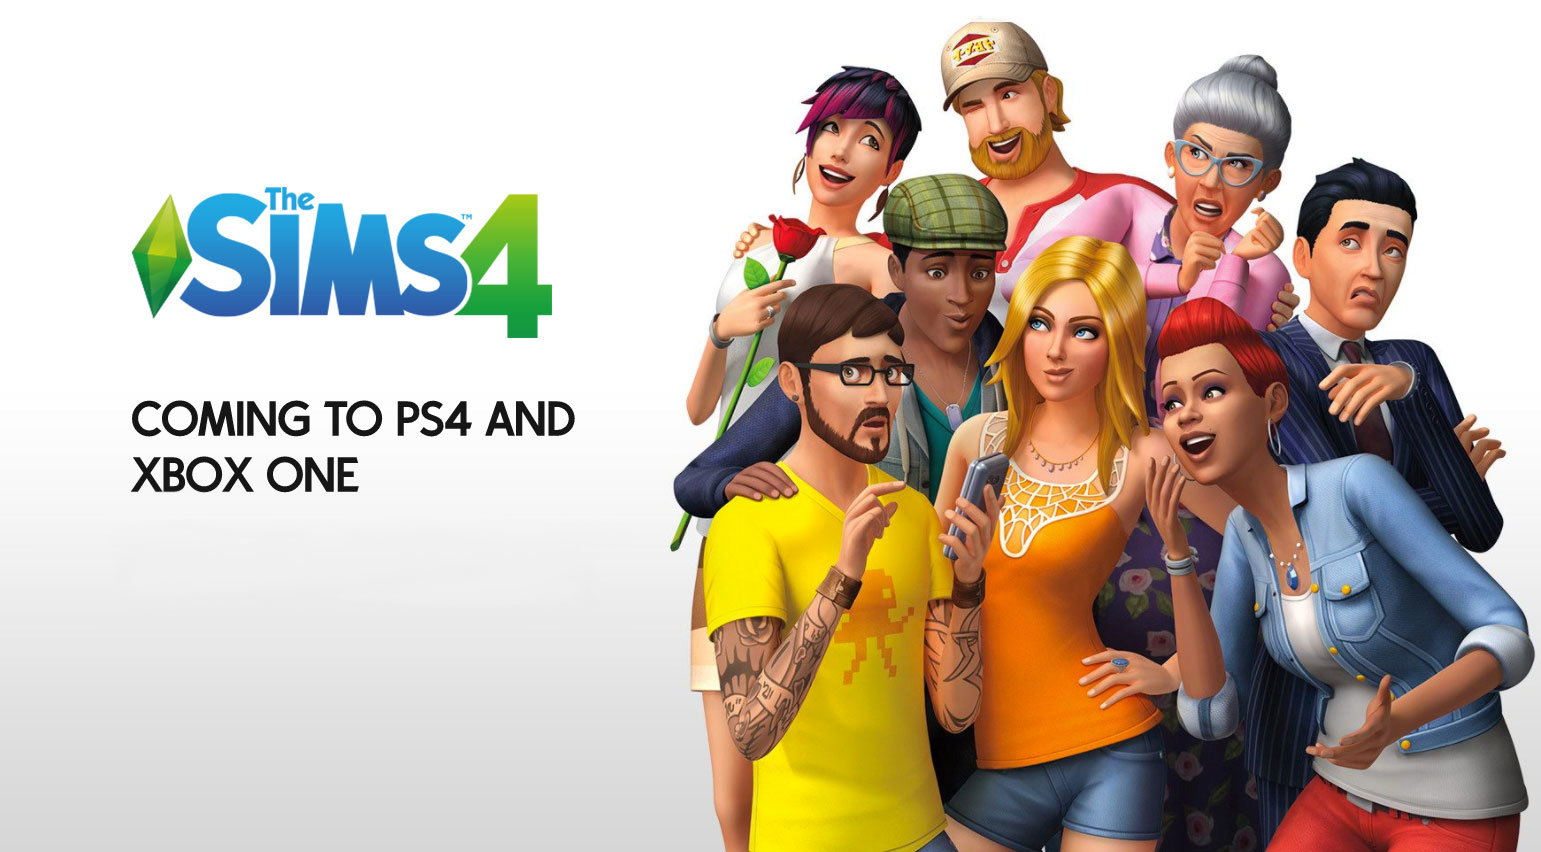 ' The Sims 4' on the consoles on November 17th